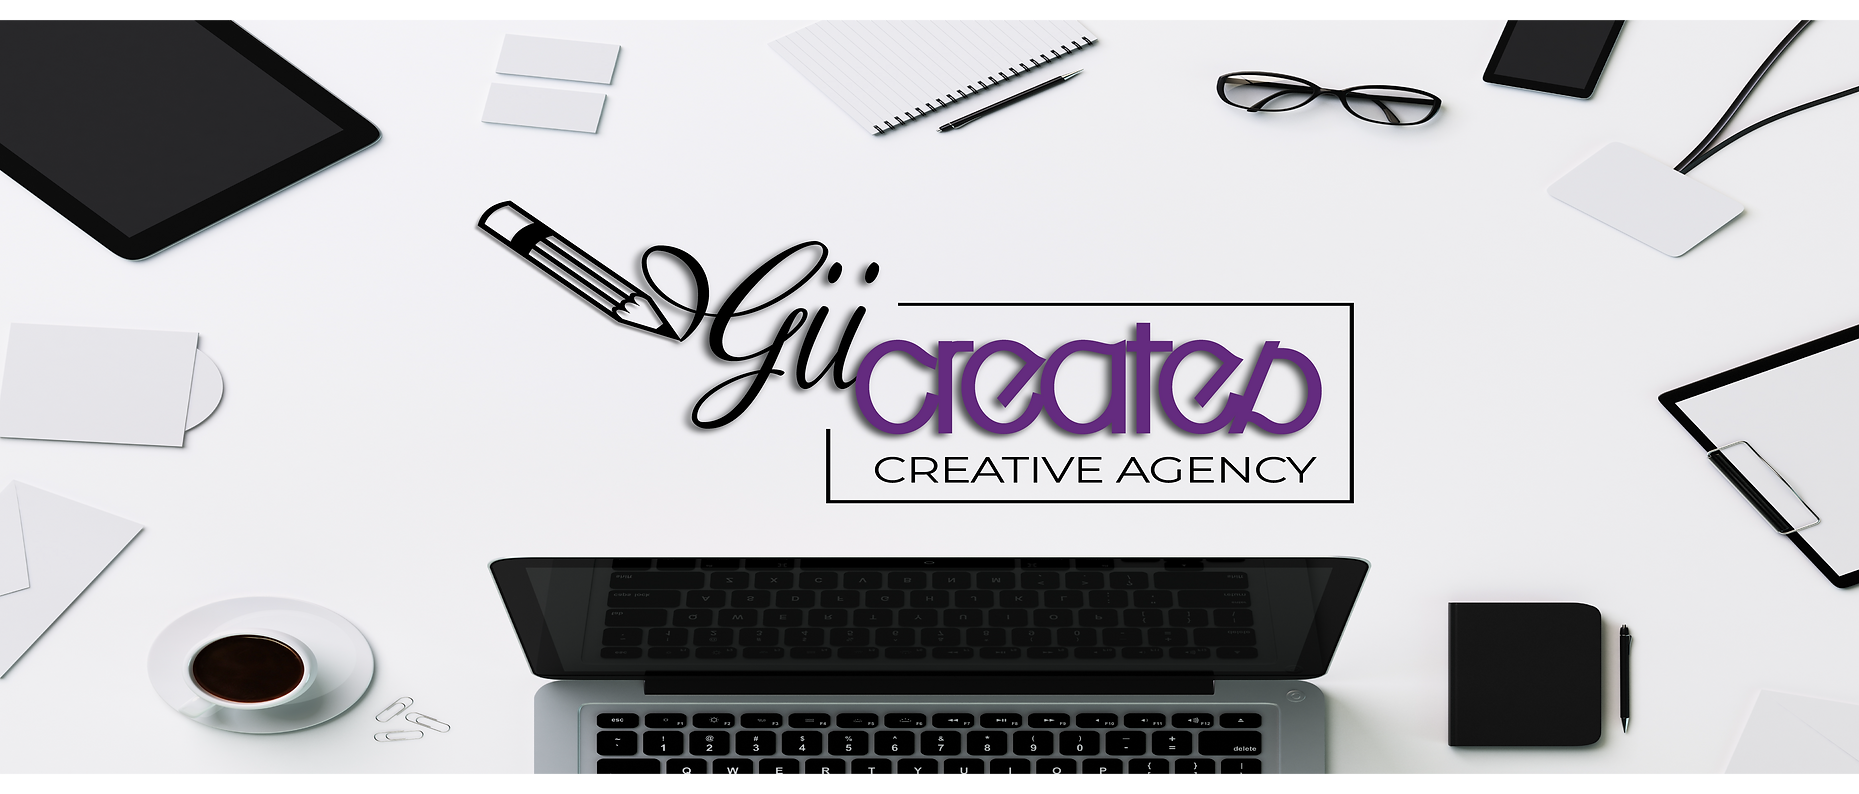 website_giicreates cover mock up.png